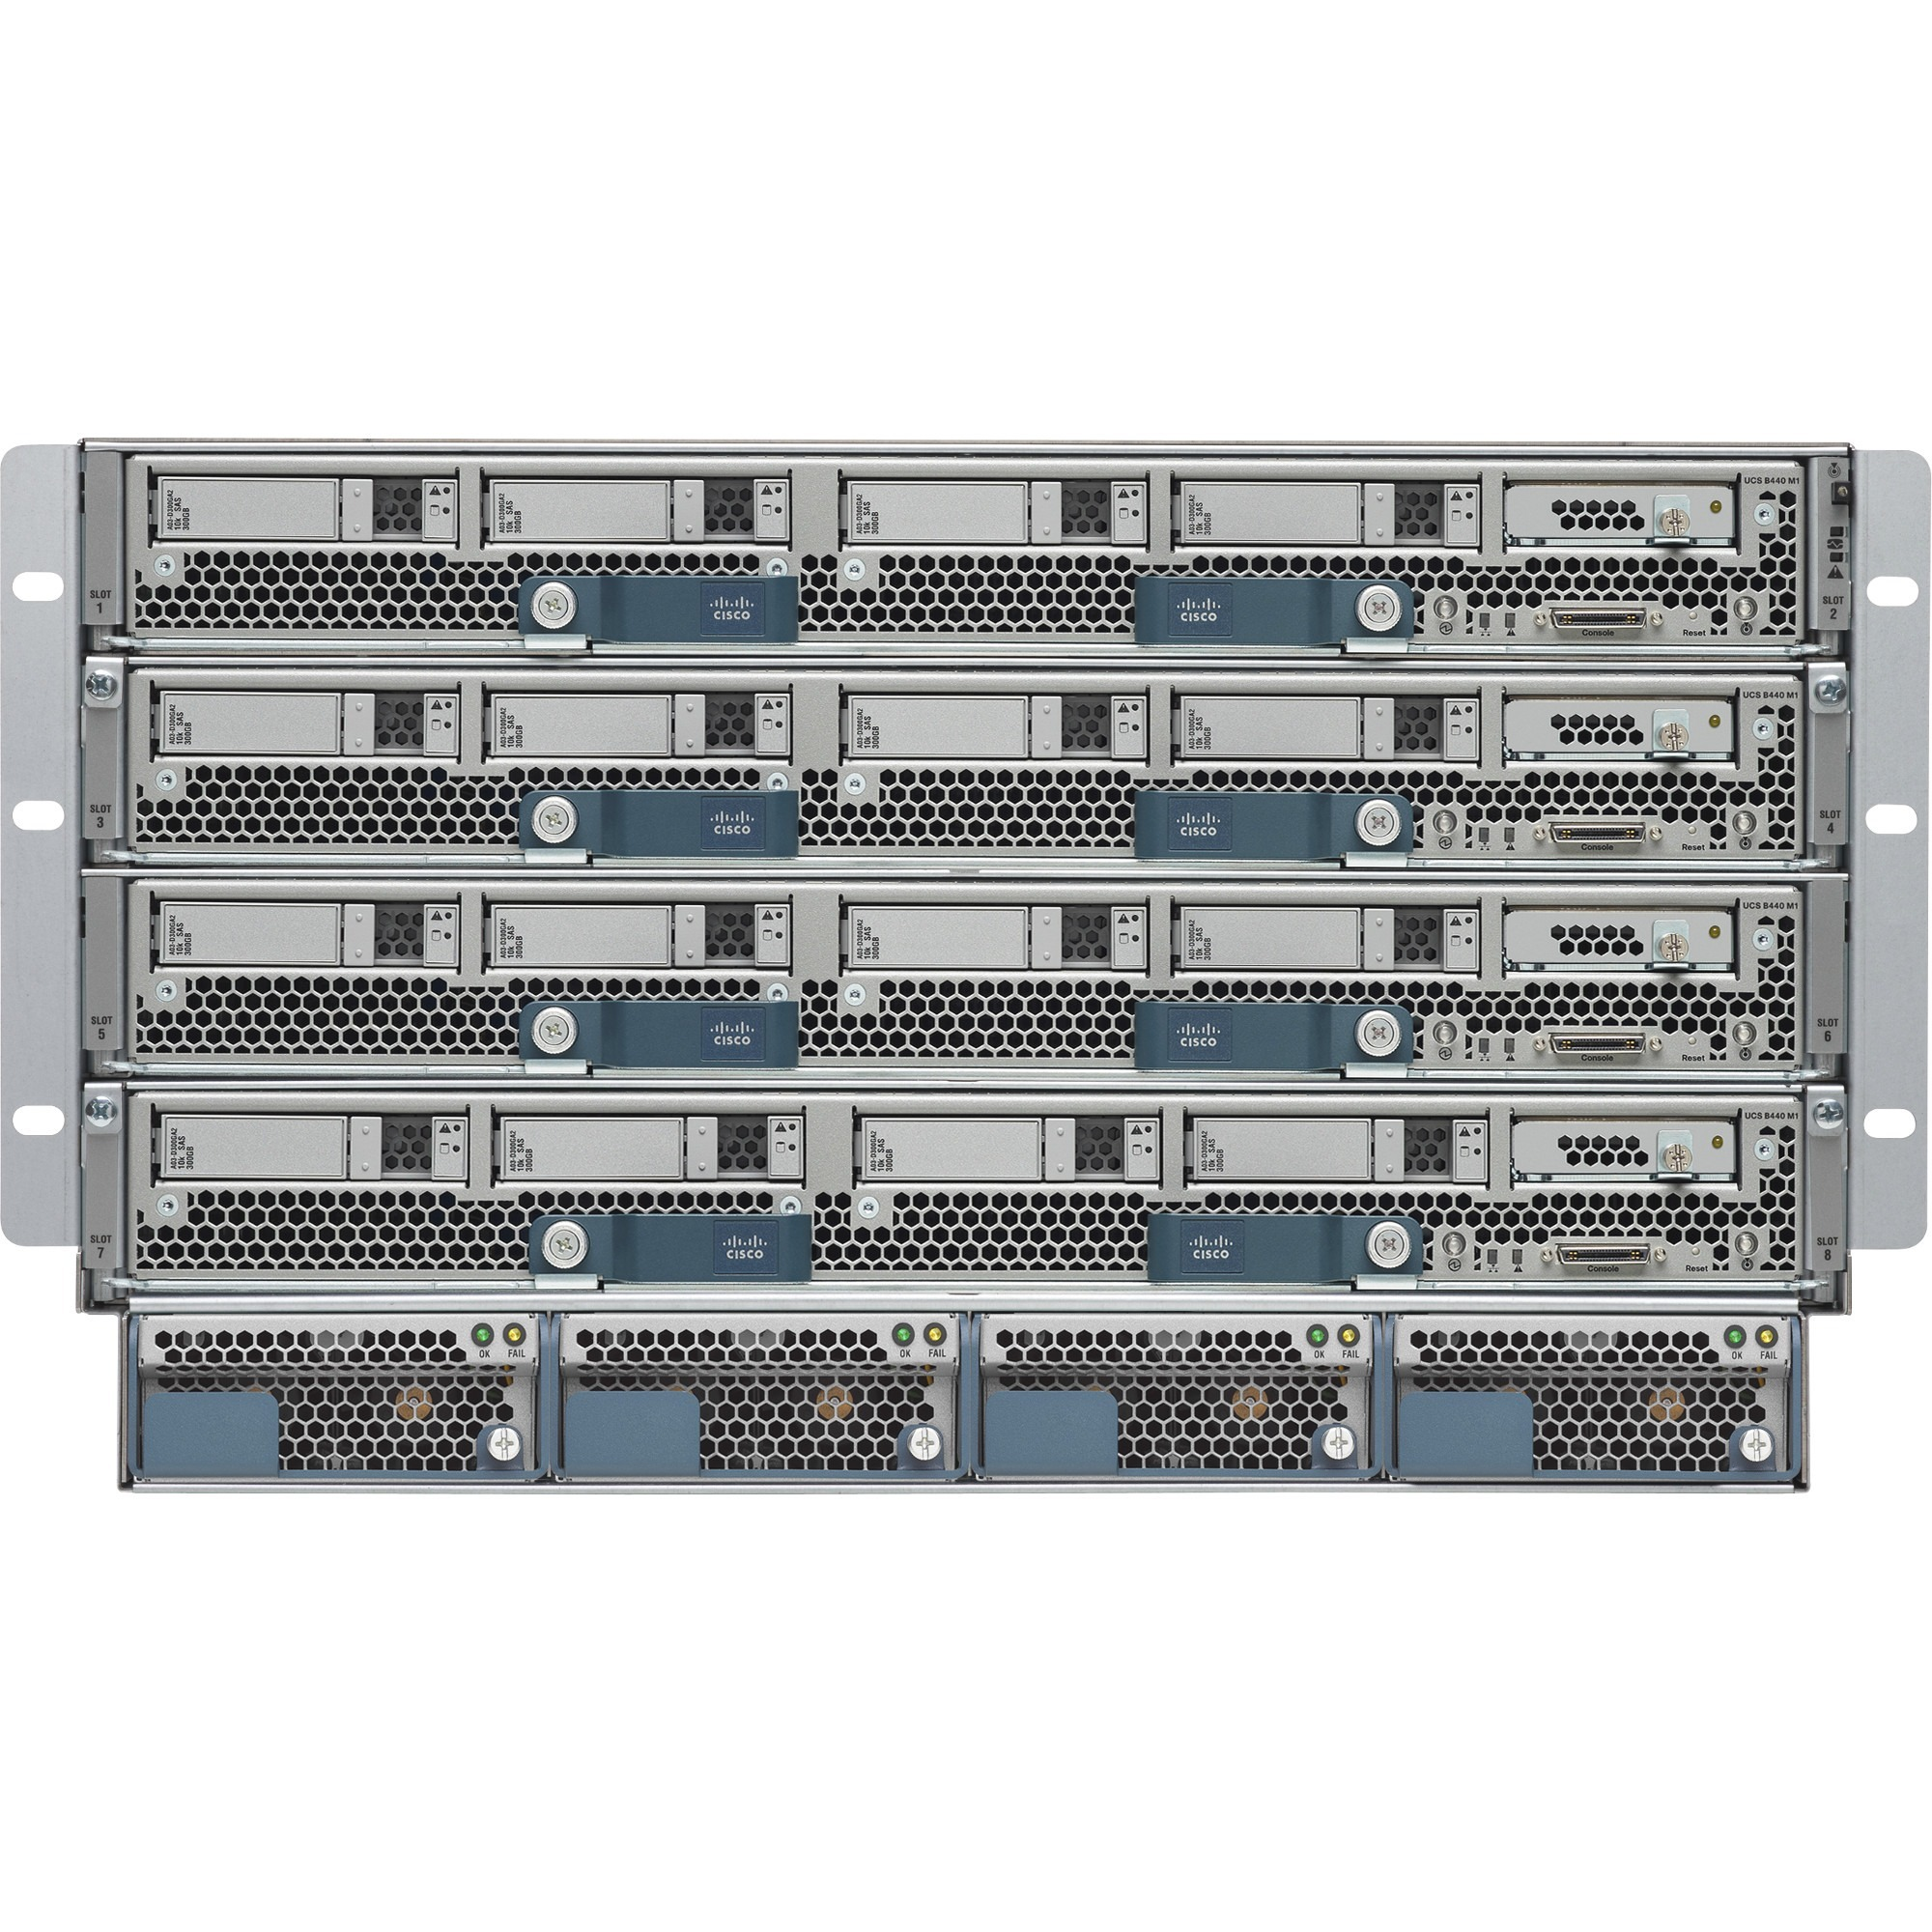 Cisco UCS 5108 Blade Server Chassis - Refurbished - Rack-mountable - Gray -  6U - 8 x Fan(s) Installed - 4 x 2500 W - Power Supply Installed - TAA